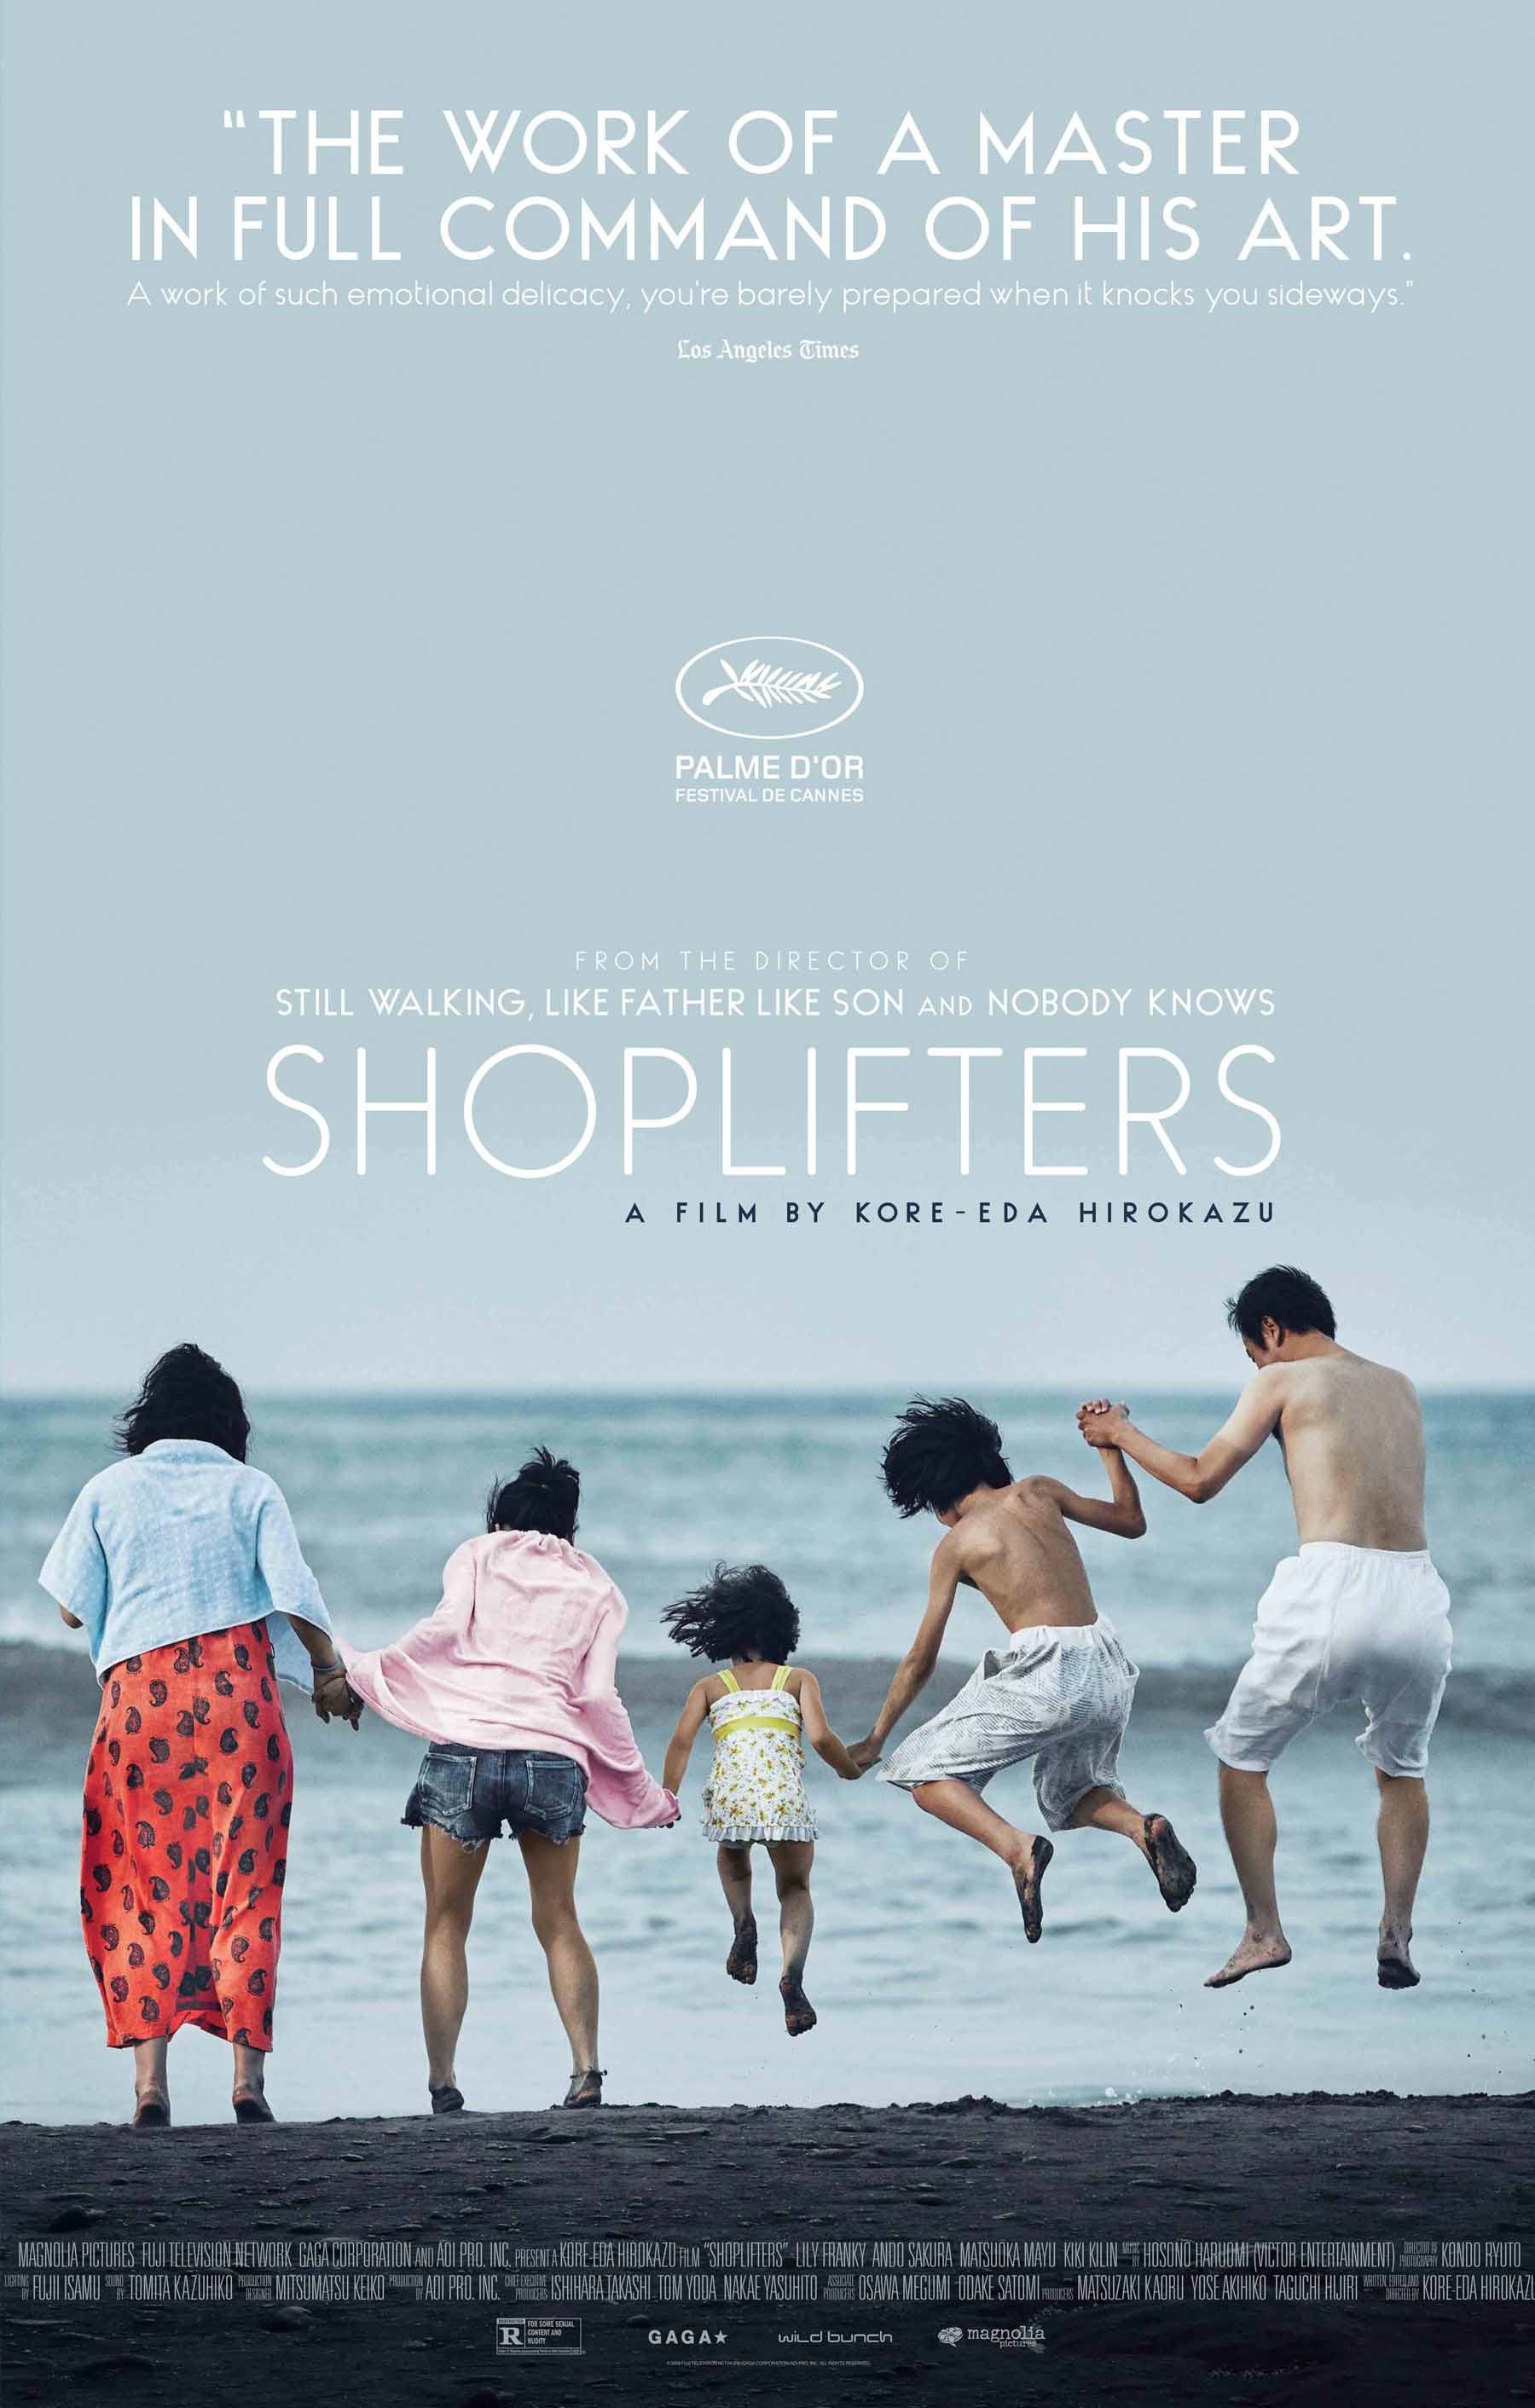 shoplifters poster final | The South Bay Film Society